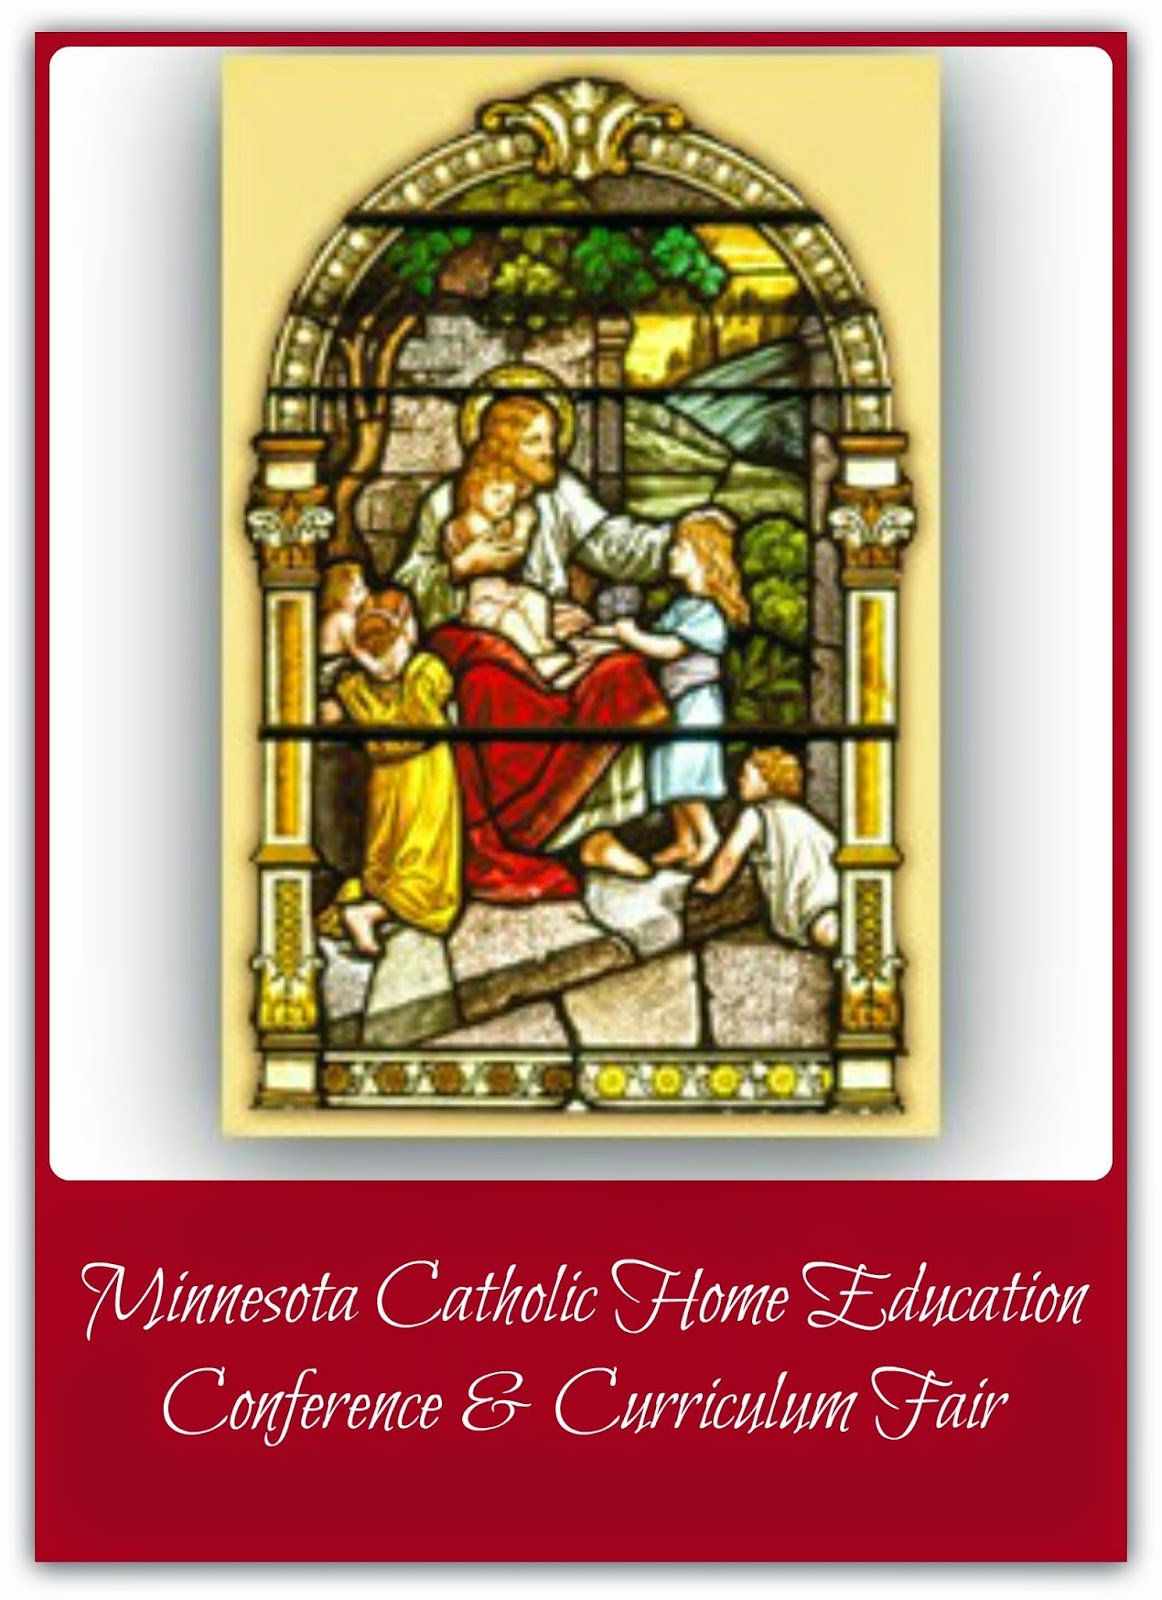 Minnesota Catholic Home Education Conference